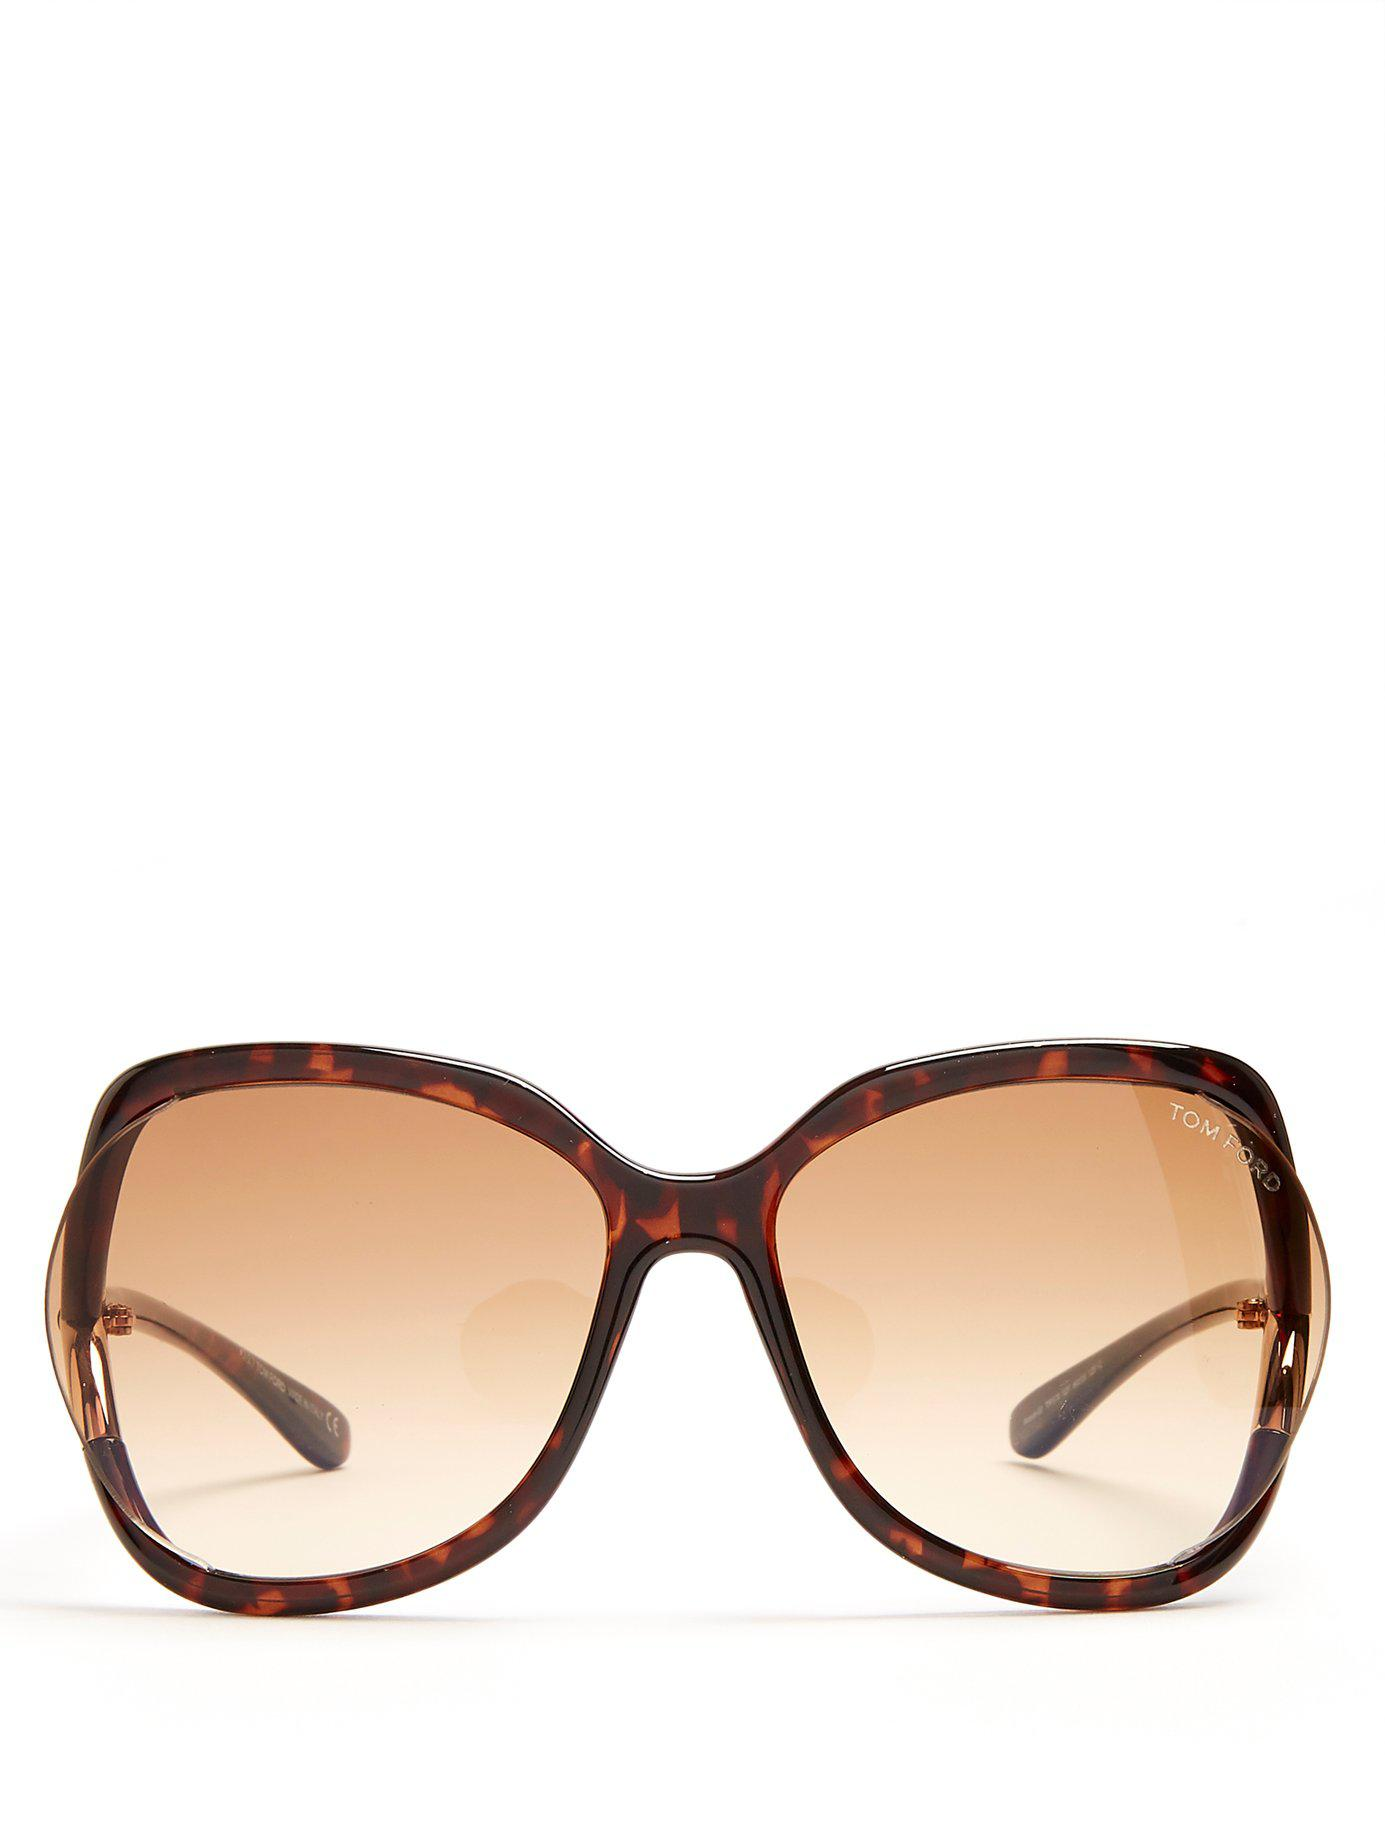 4d47953177 Tom Ford Stephanie Oversized Square-frame Sunglasses in Brown - Lyst